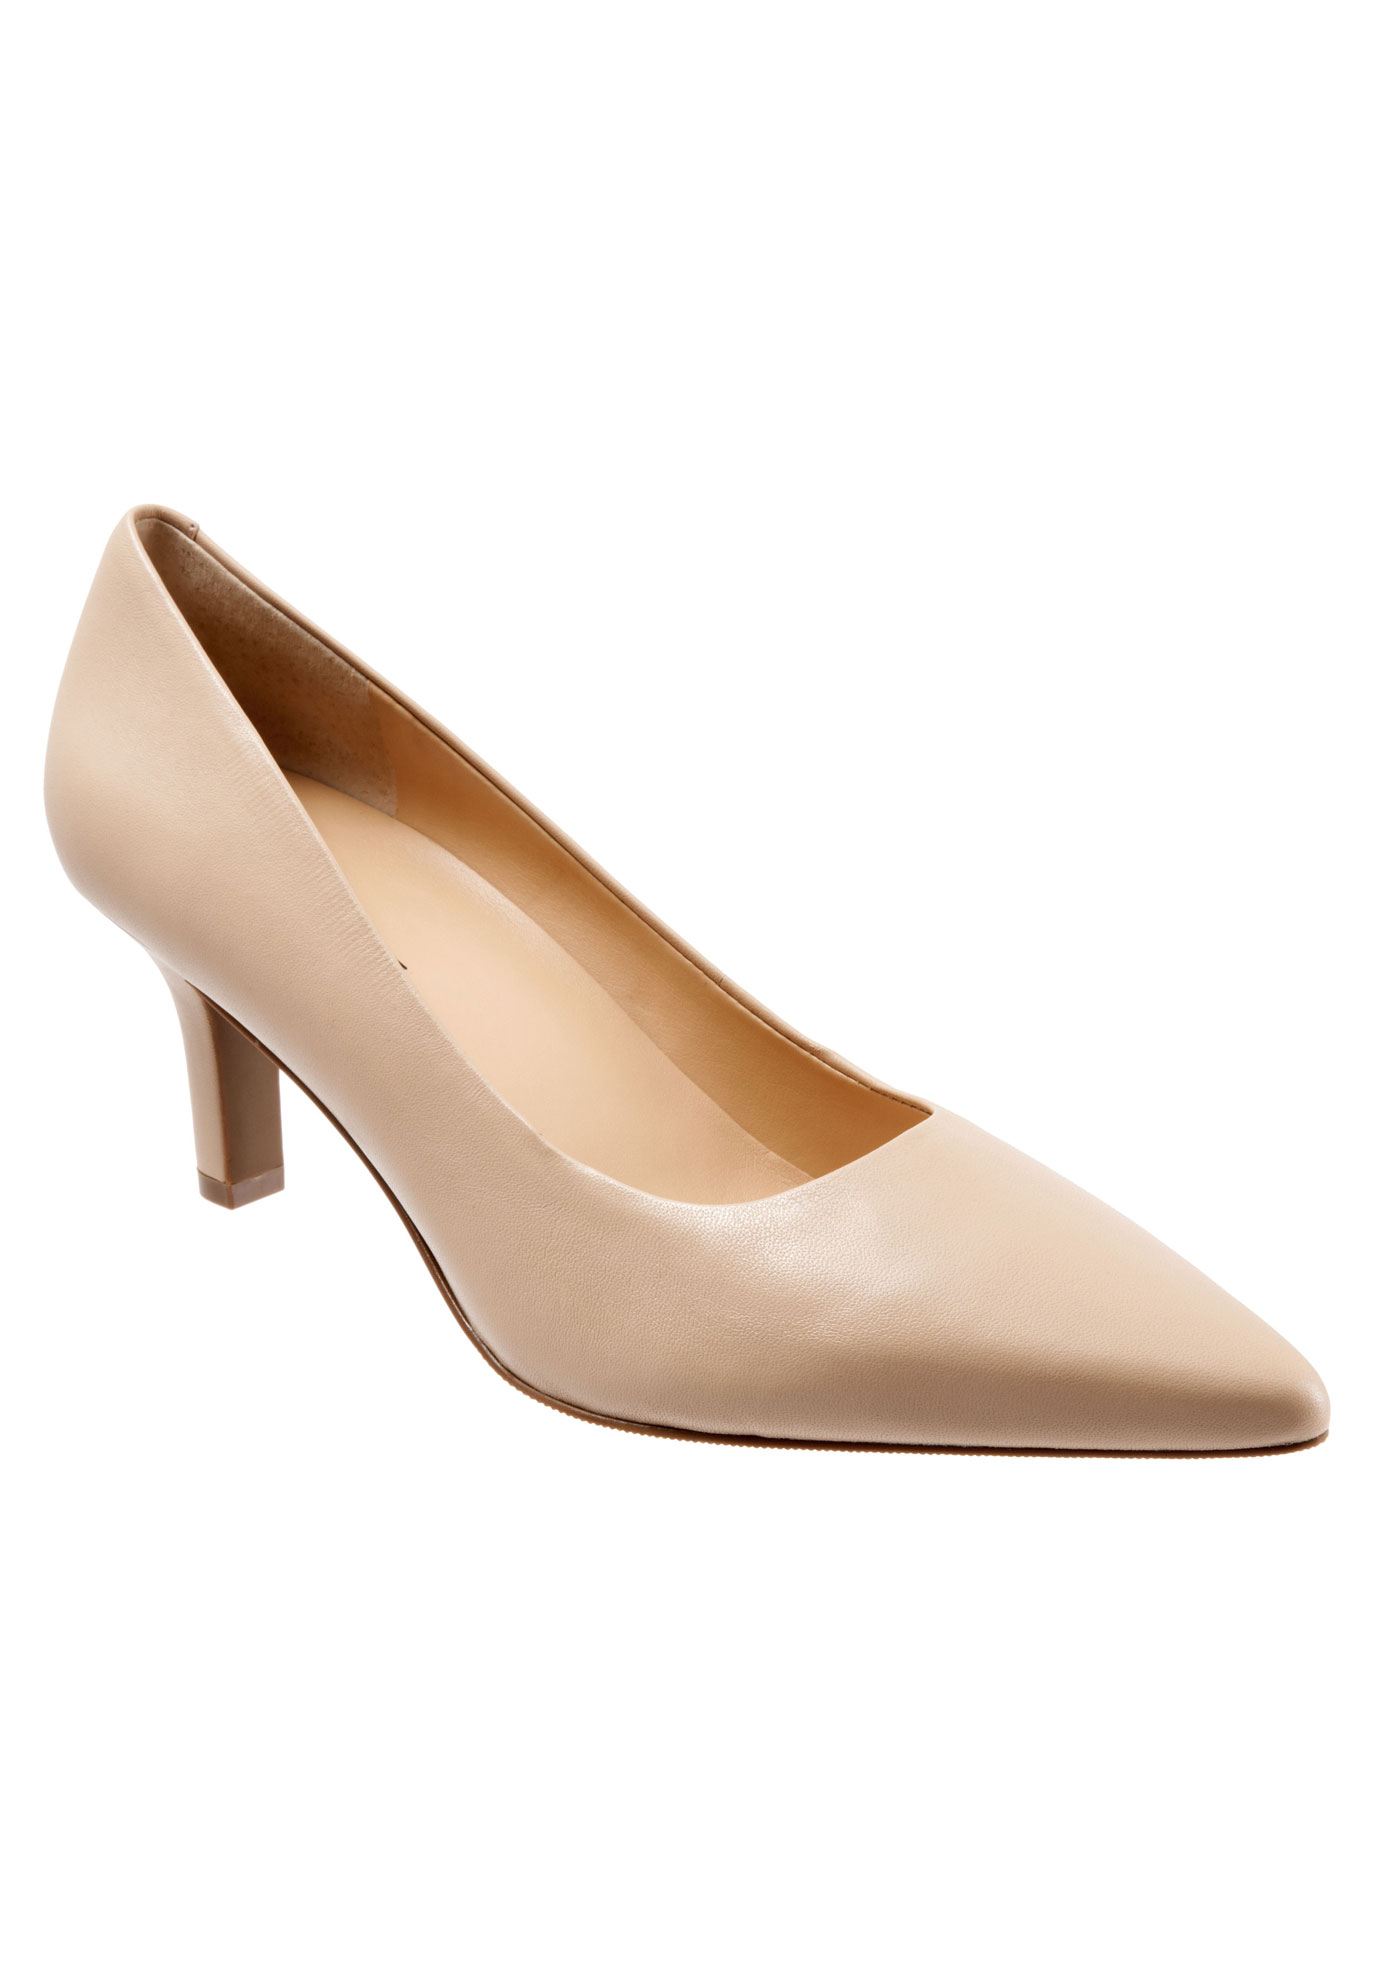 Noelle Pumps by Trotters®,